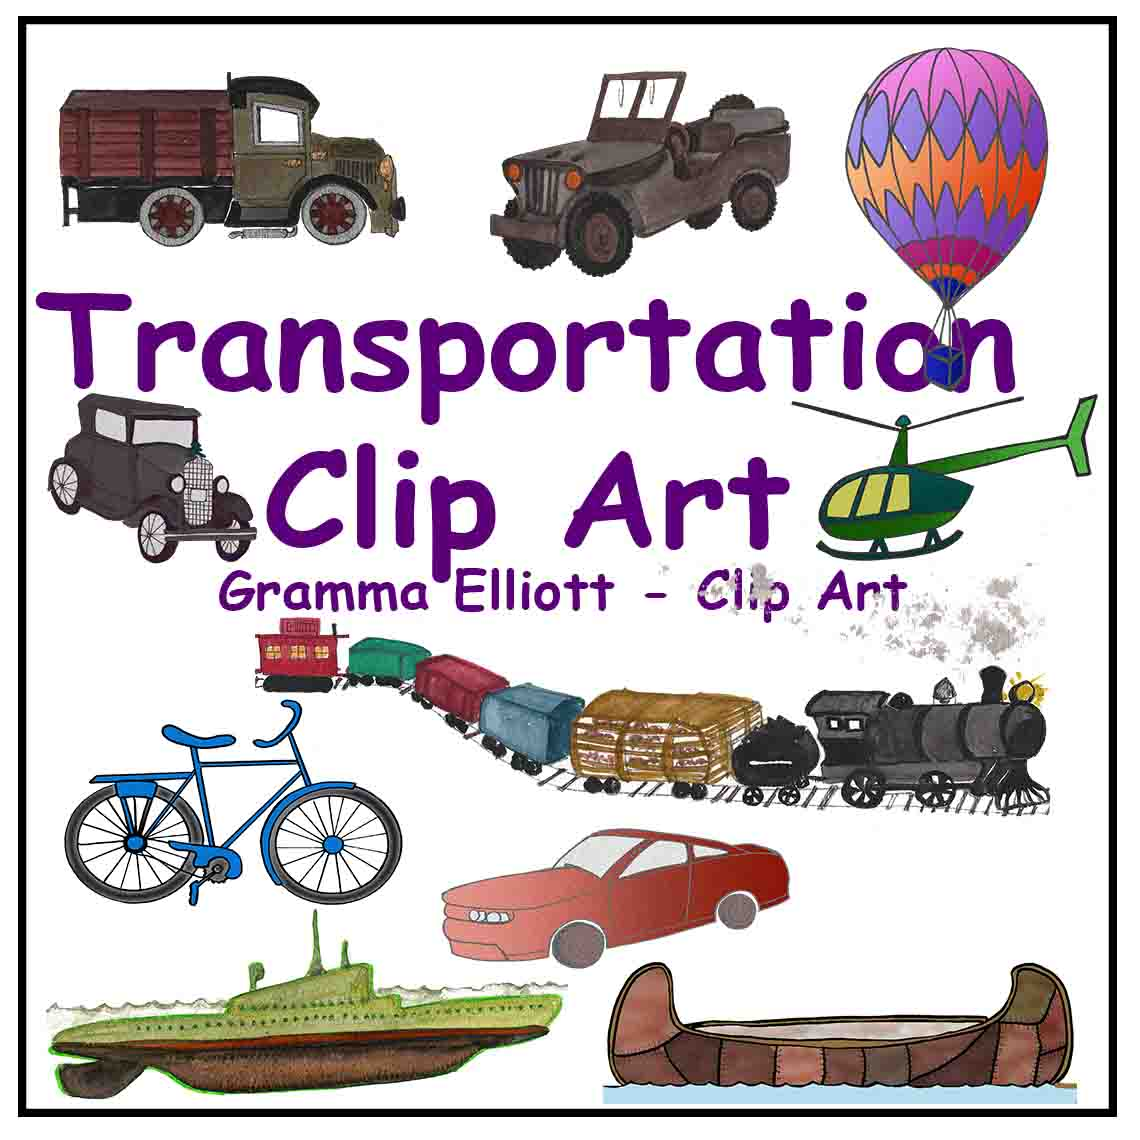 Canoe clipart transport Canoe fashioned Clip Air Bus